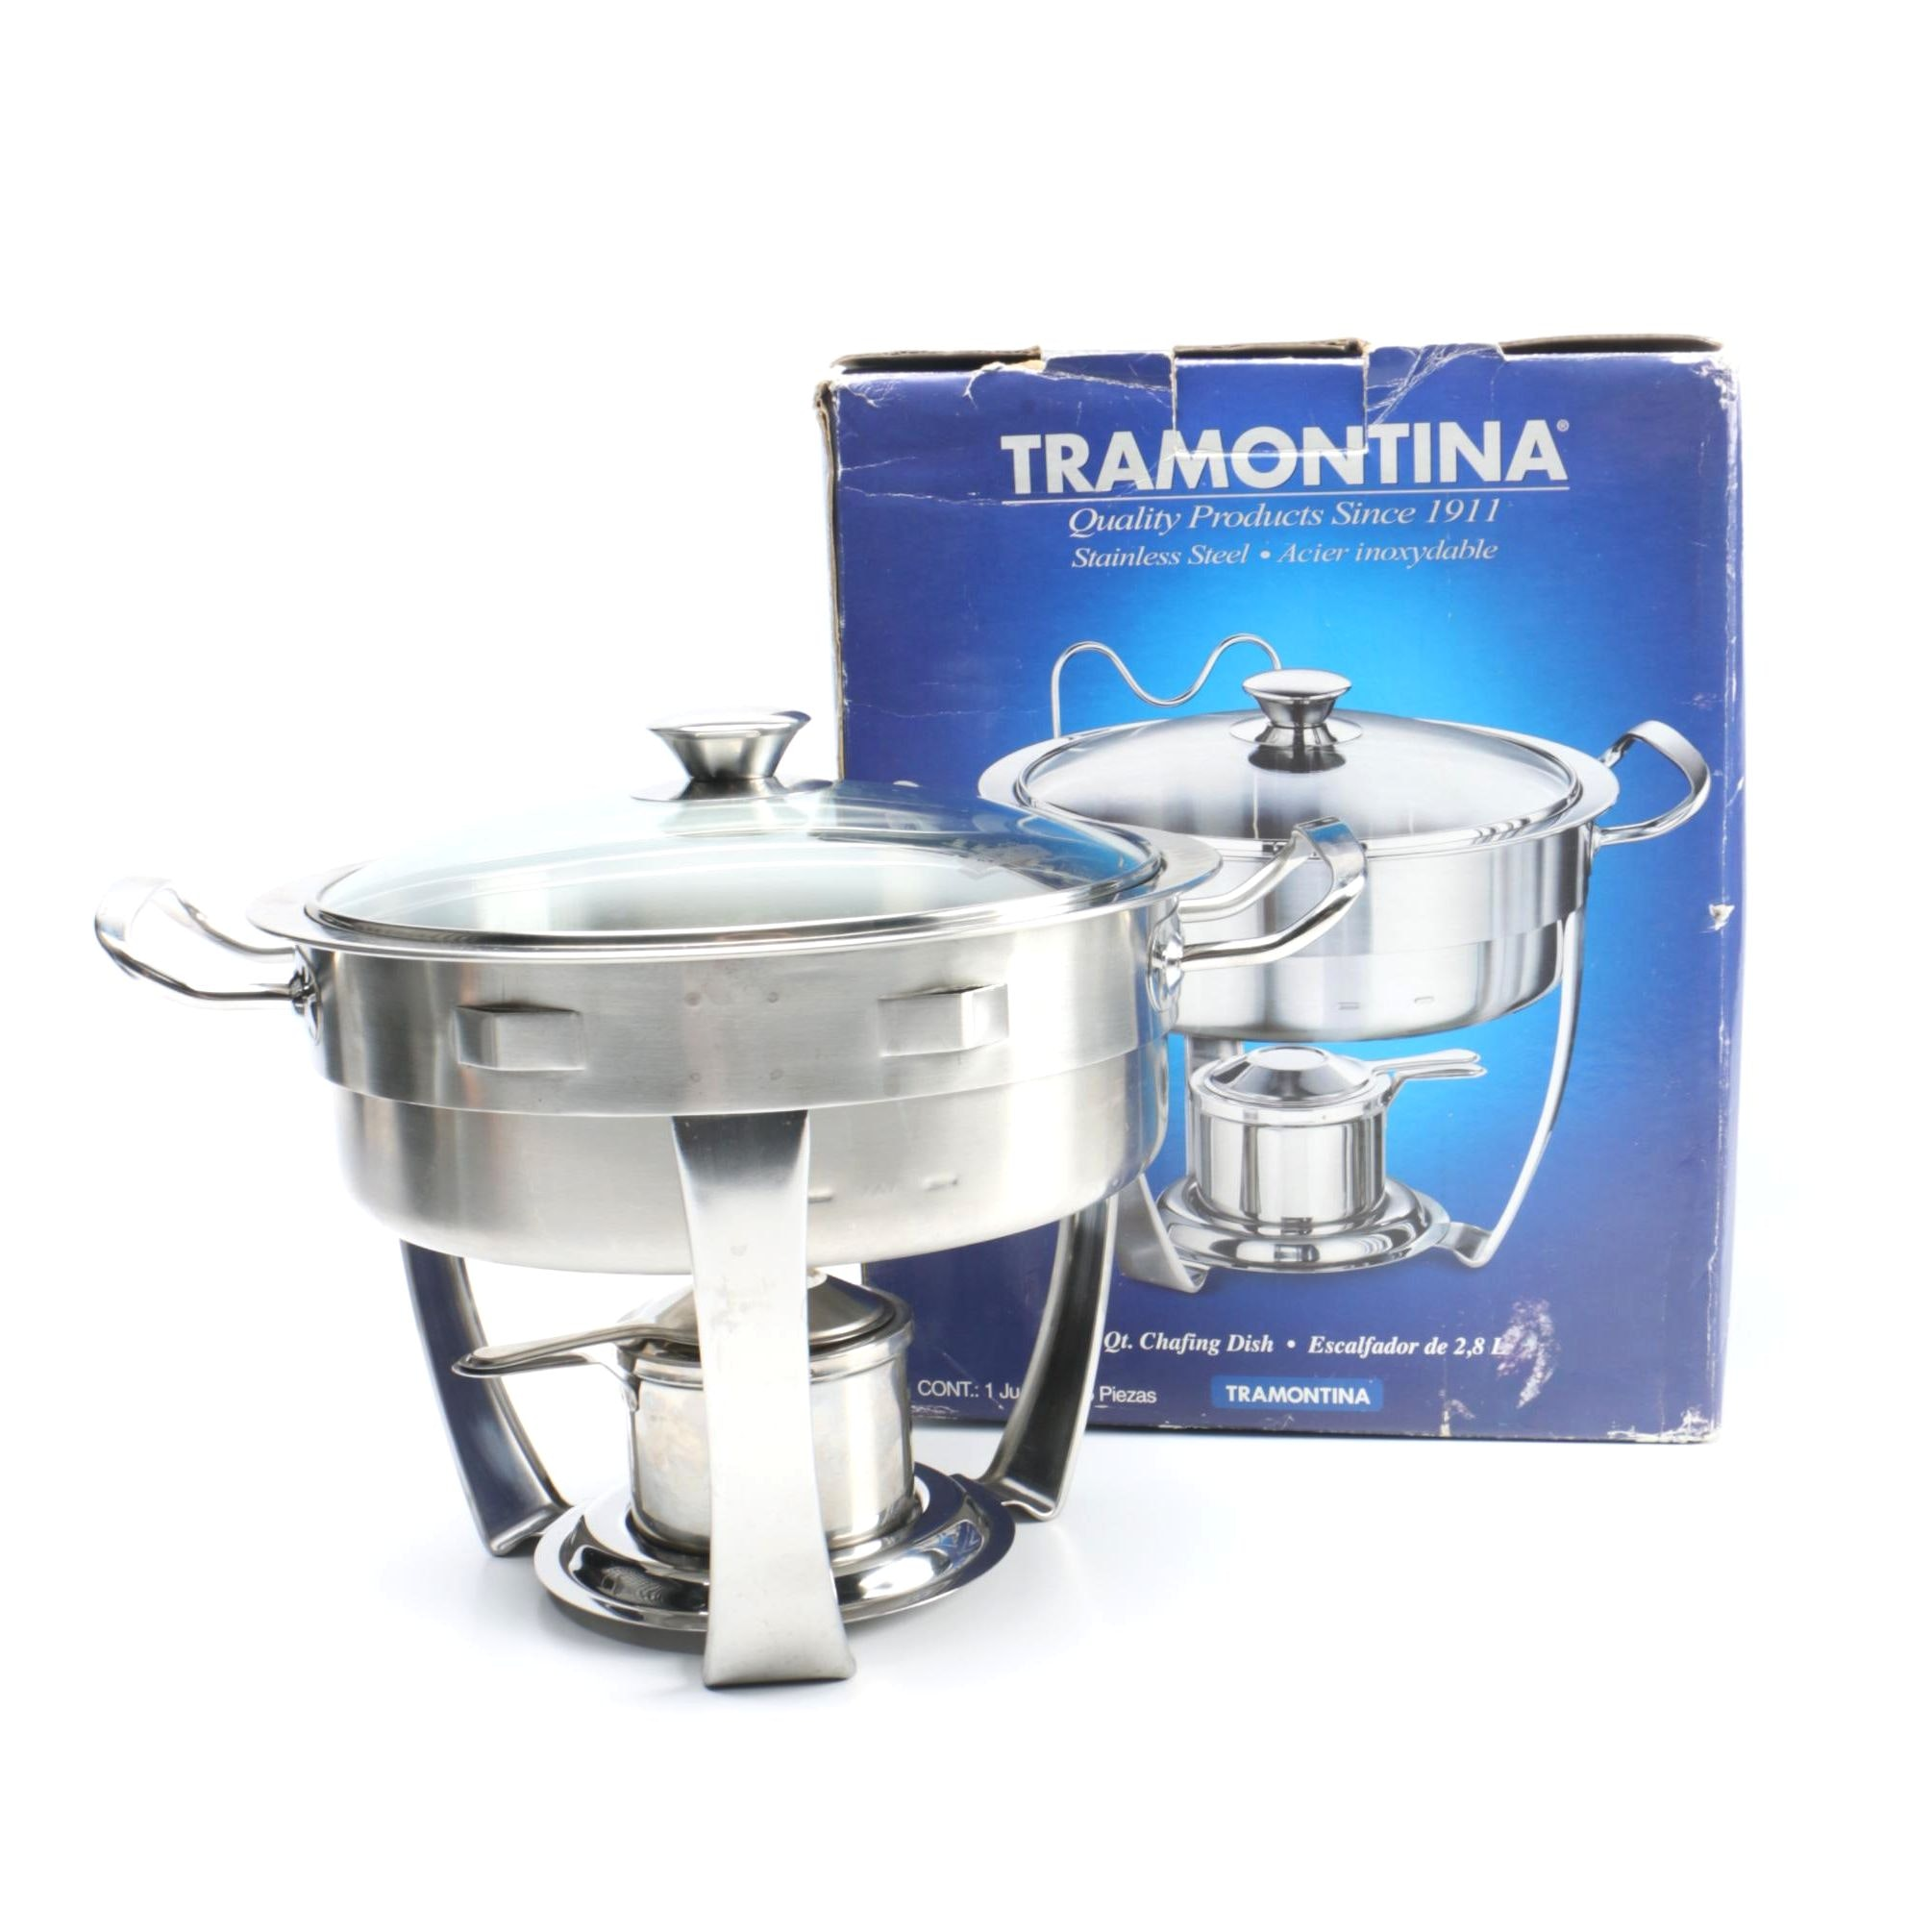 Tramontina Stainless Steel Chafing Dish